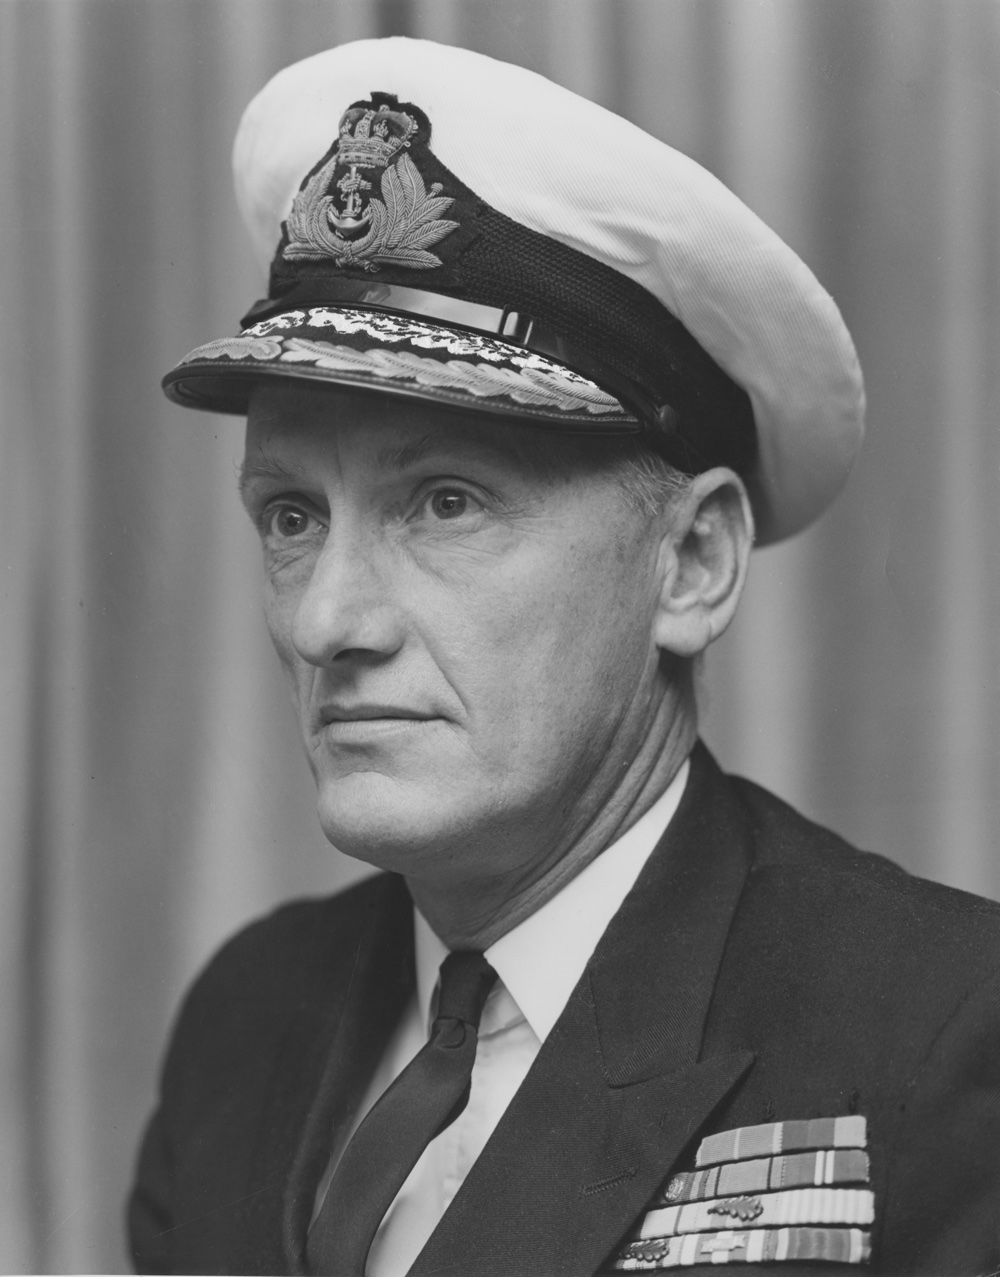 RADM Peter Hogarth Doyle